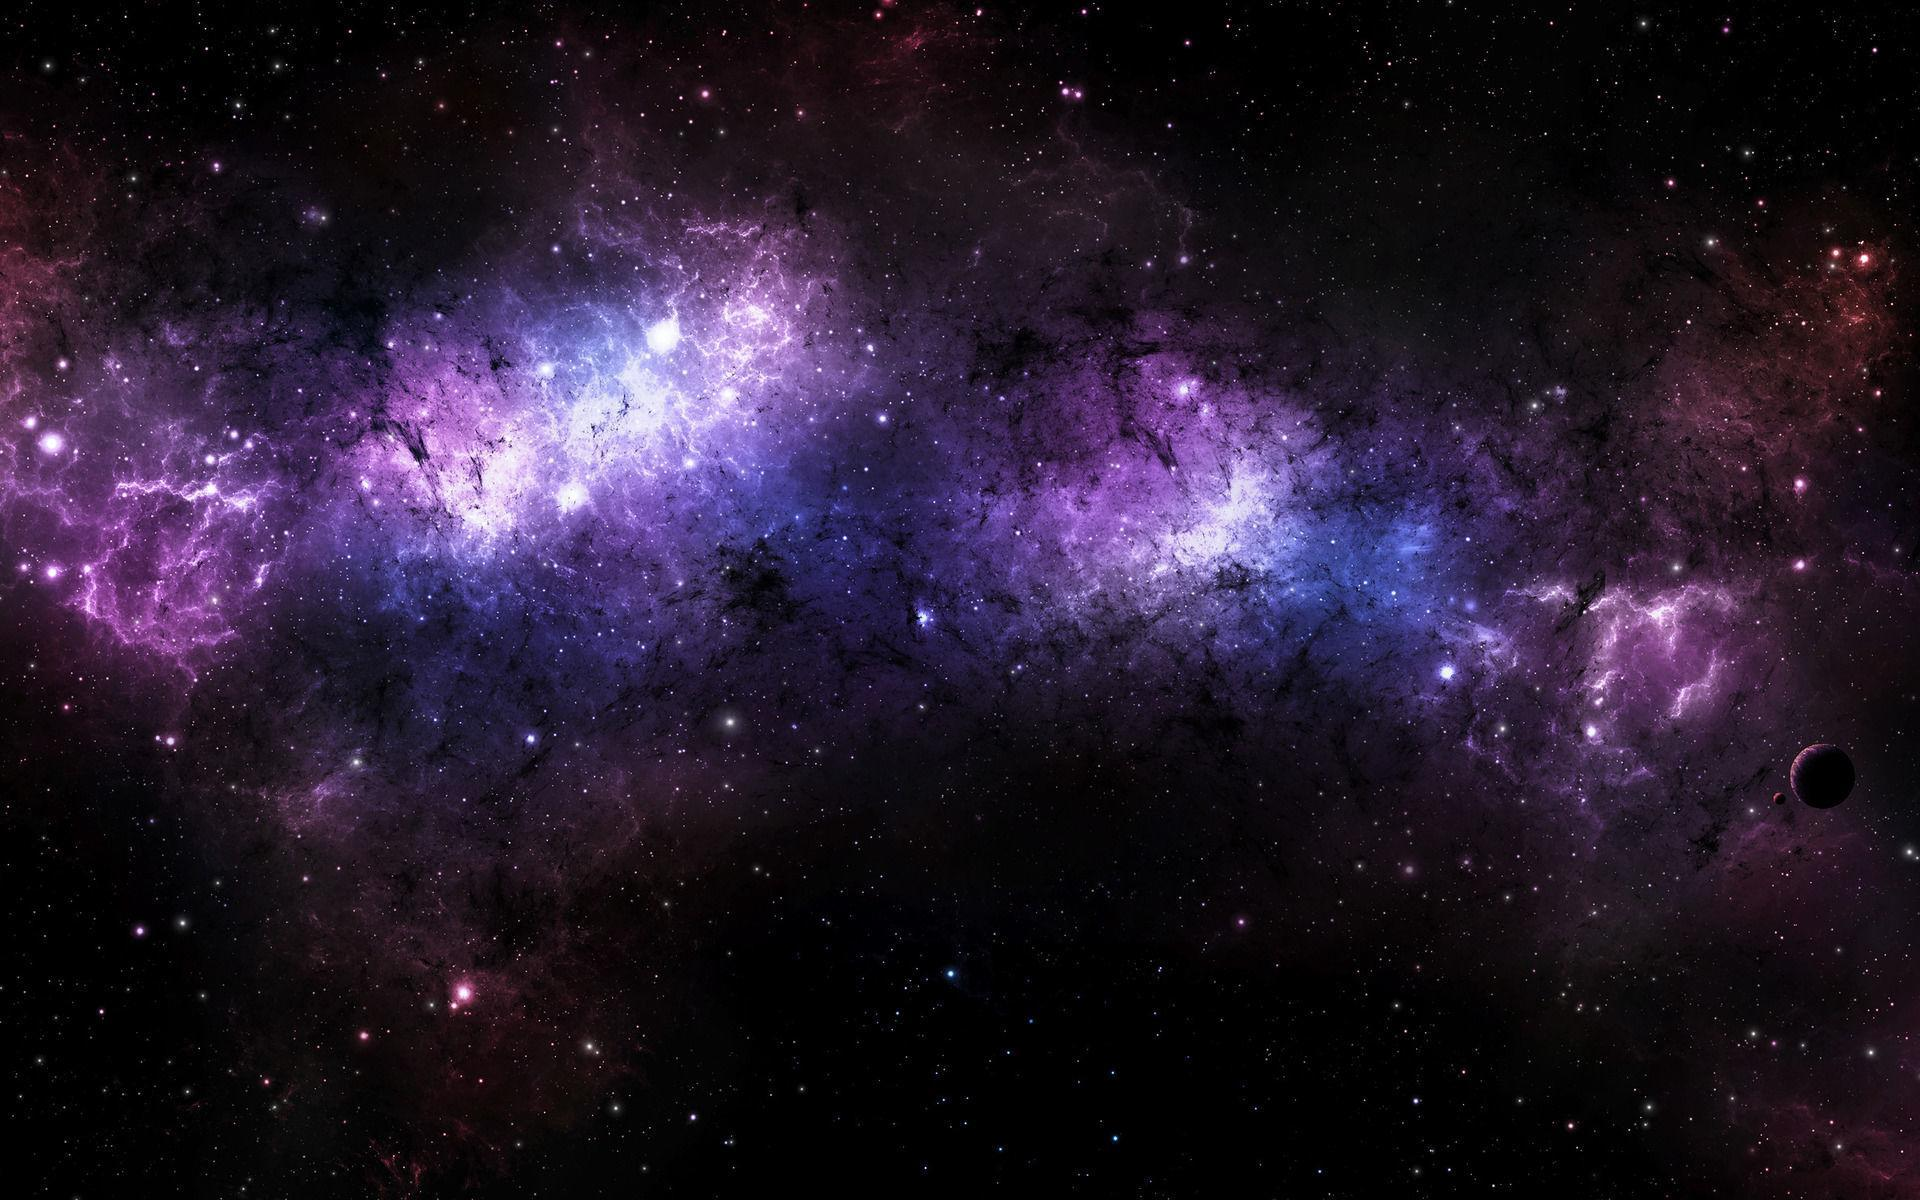 Here sits a beautiful anomaly in space, in a far far away galaxy. #space #galaxy #background #exploration